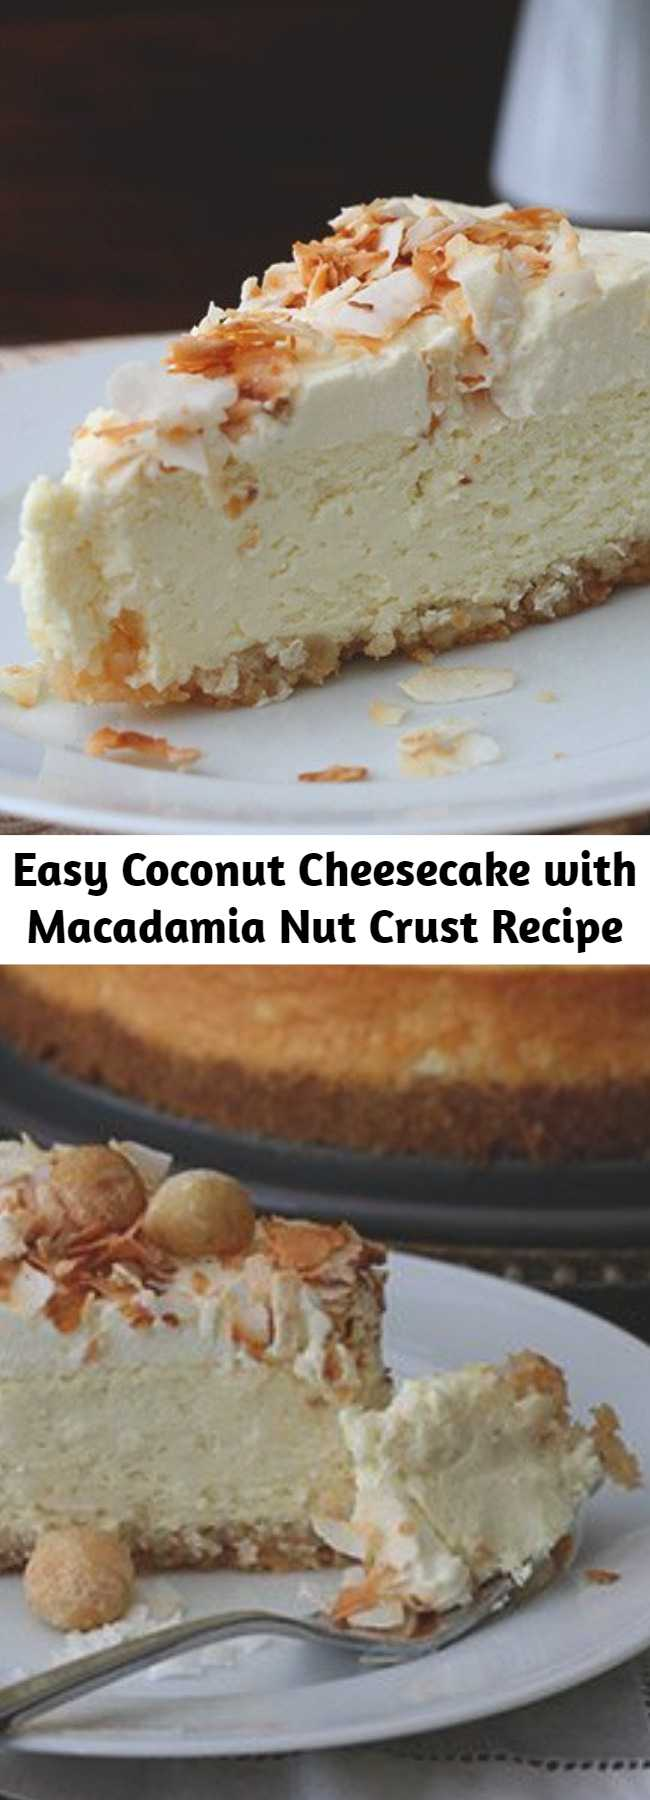 Easy Coconut Cheesecake with Macadamia Nut Crust Recipe - This coconut cheesecake has a macadamia nut crust and is unbelievably creamy and rich. It's a low carb dessert that's as tasty as it is beautiful, and is sure to impress your friends! Keto and sugar-free, this is the best coconut cheesecake you will ever eat.